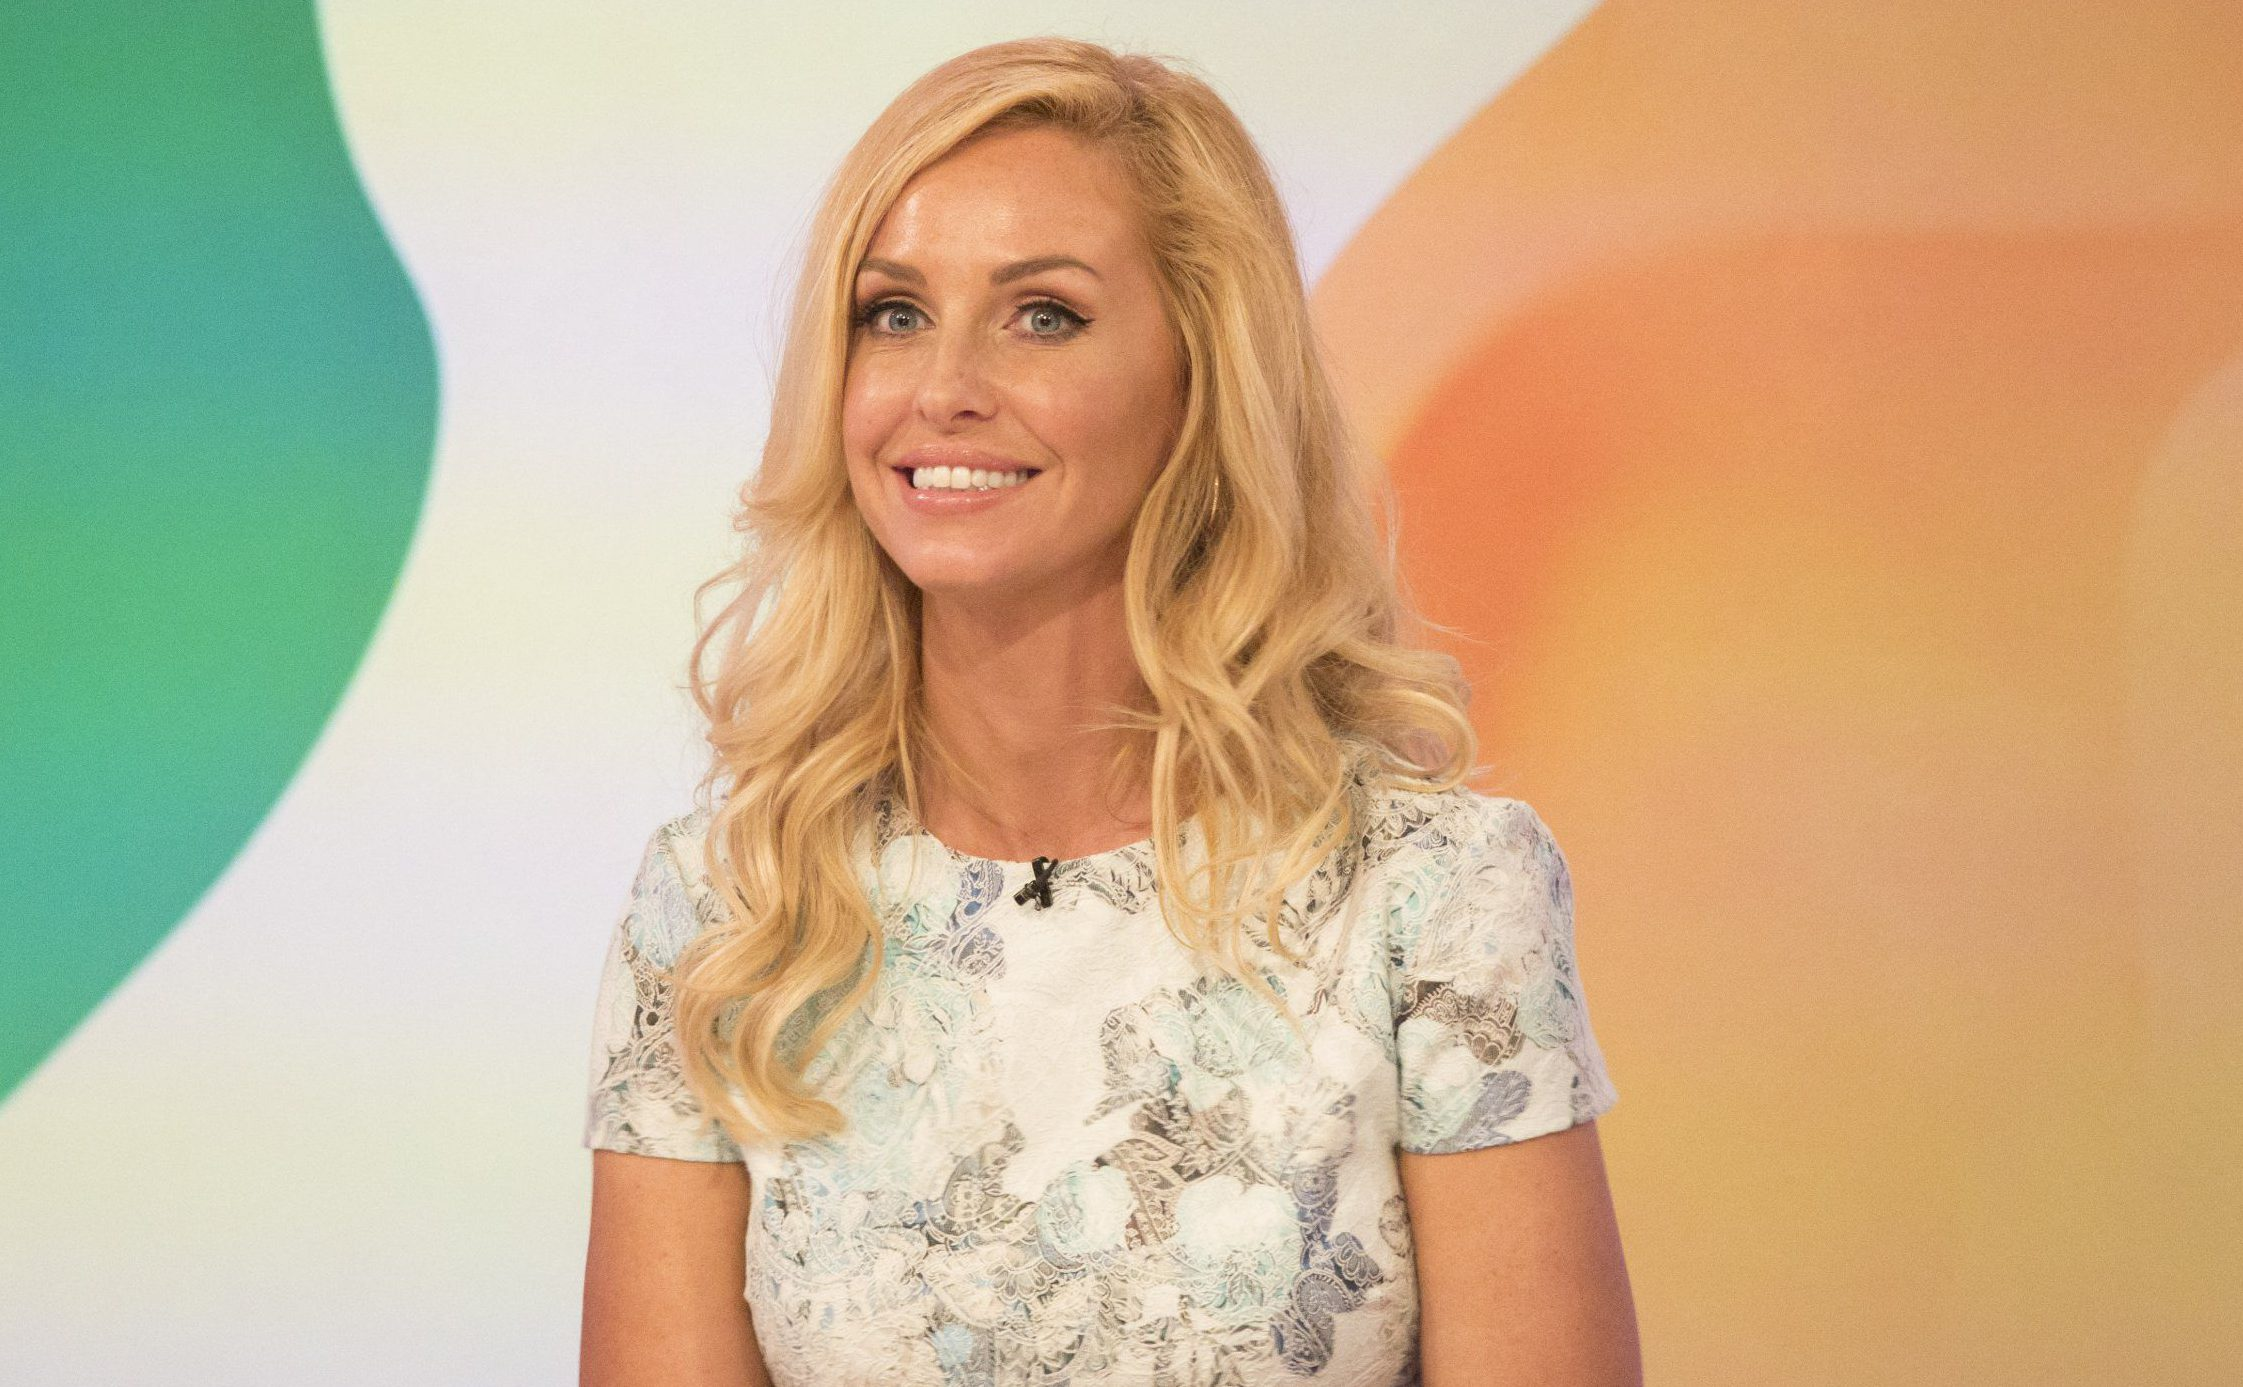 Big Brother star Josie Gibson brands man a 'vile pig' after suffering black eye from vicious attack